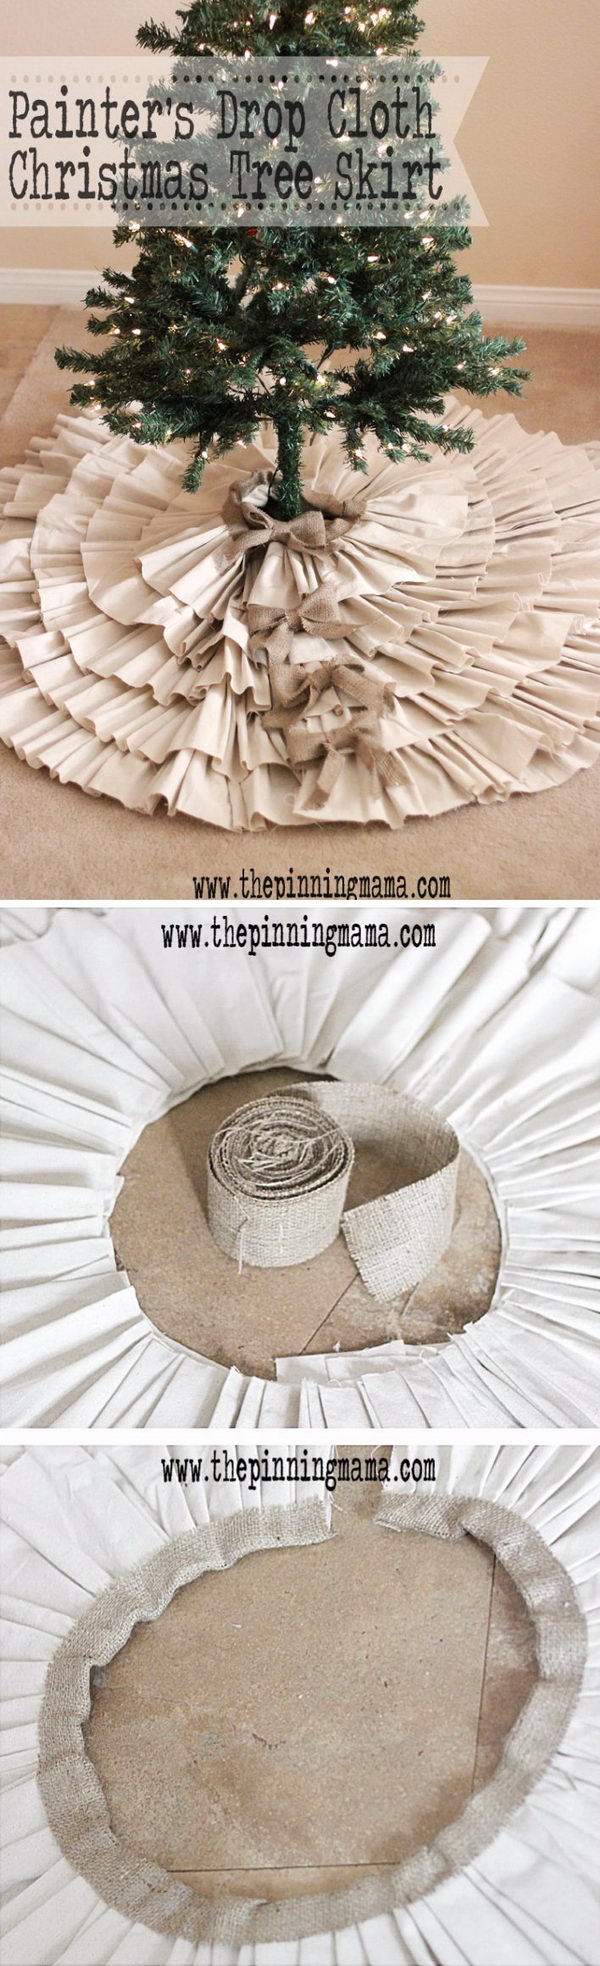 DIY Painter's Drop Cloth And Burlap Ruffled Tree Skirt.